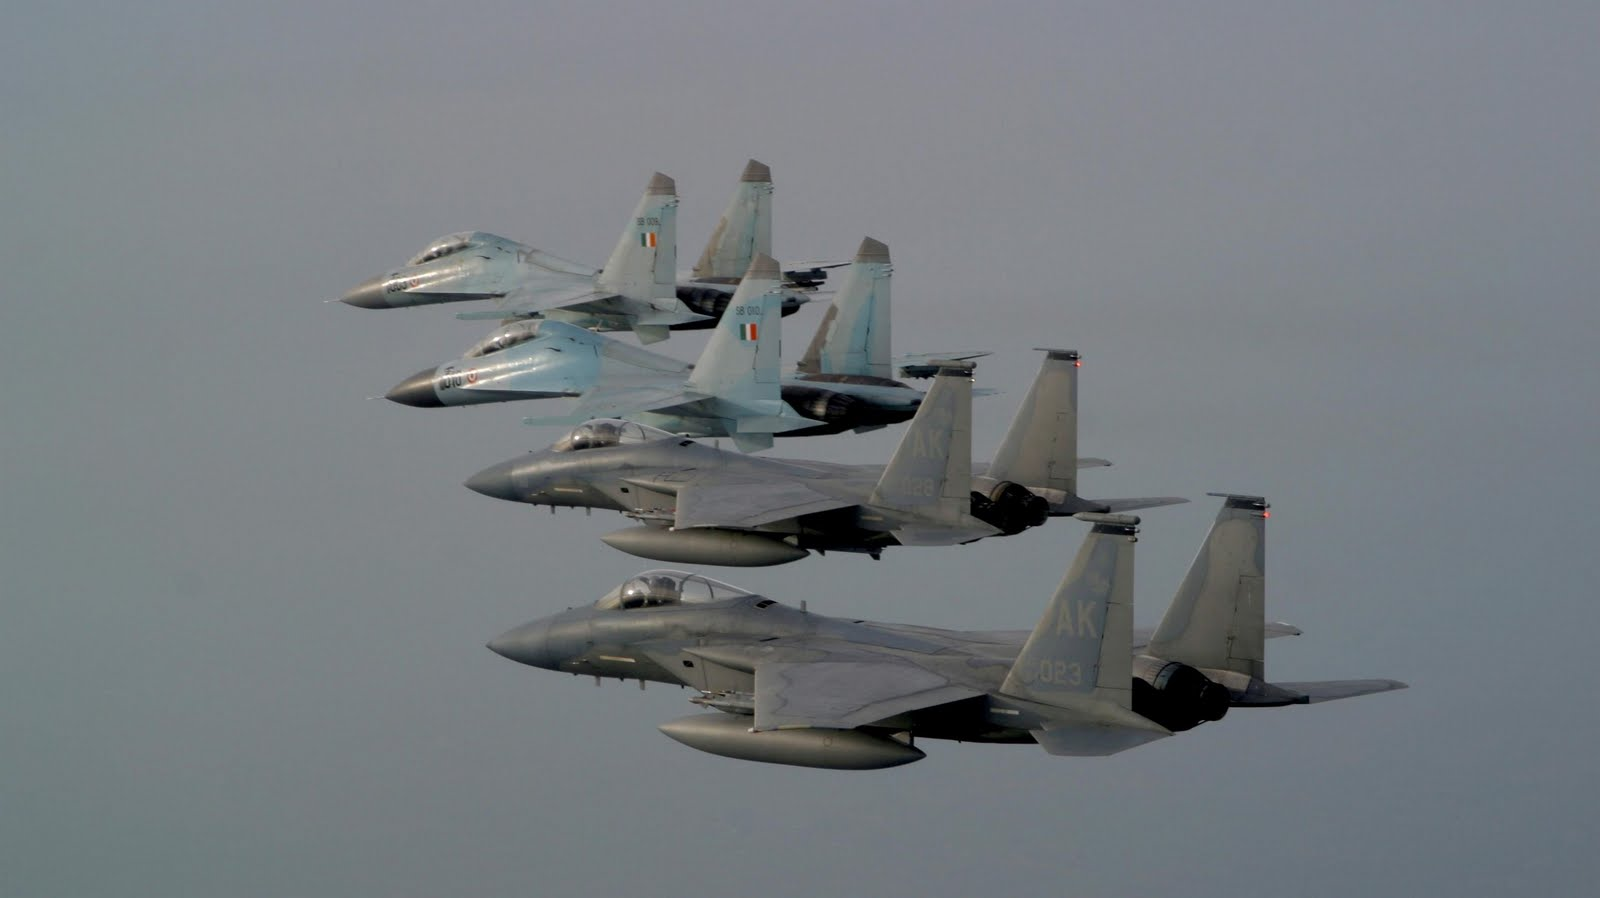 http://4.bp.blogspot.com/-1KmRuMKQFeY/Tgh9ljrE1DI/AAAAAAAAFxk/4FnZNFIzCbA/s1600/f15_strike_eagle_lined_up_with_su-30_mki_aircraft-wallpaper.jpg